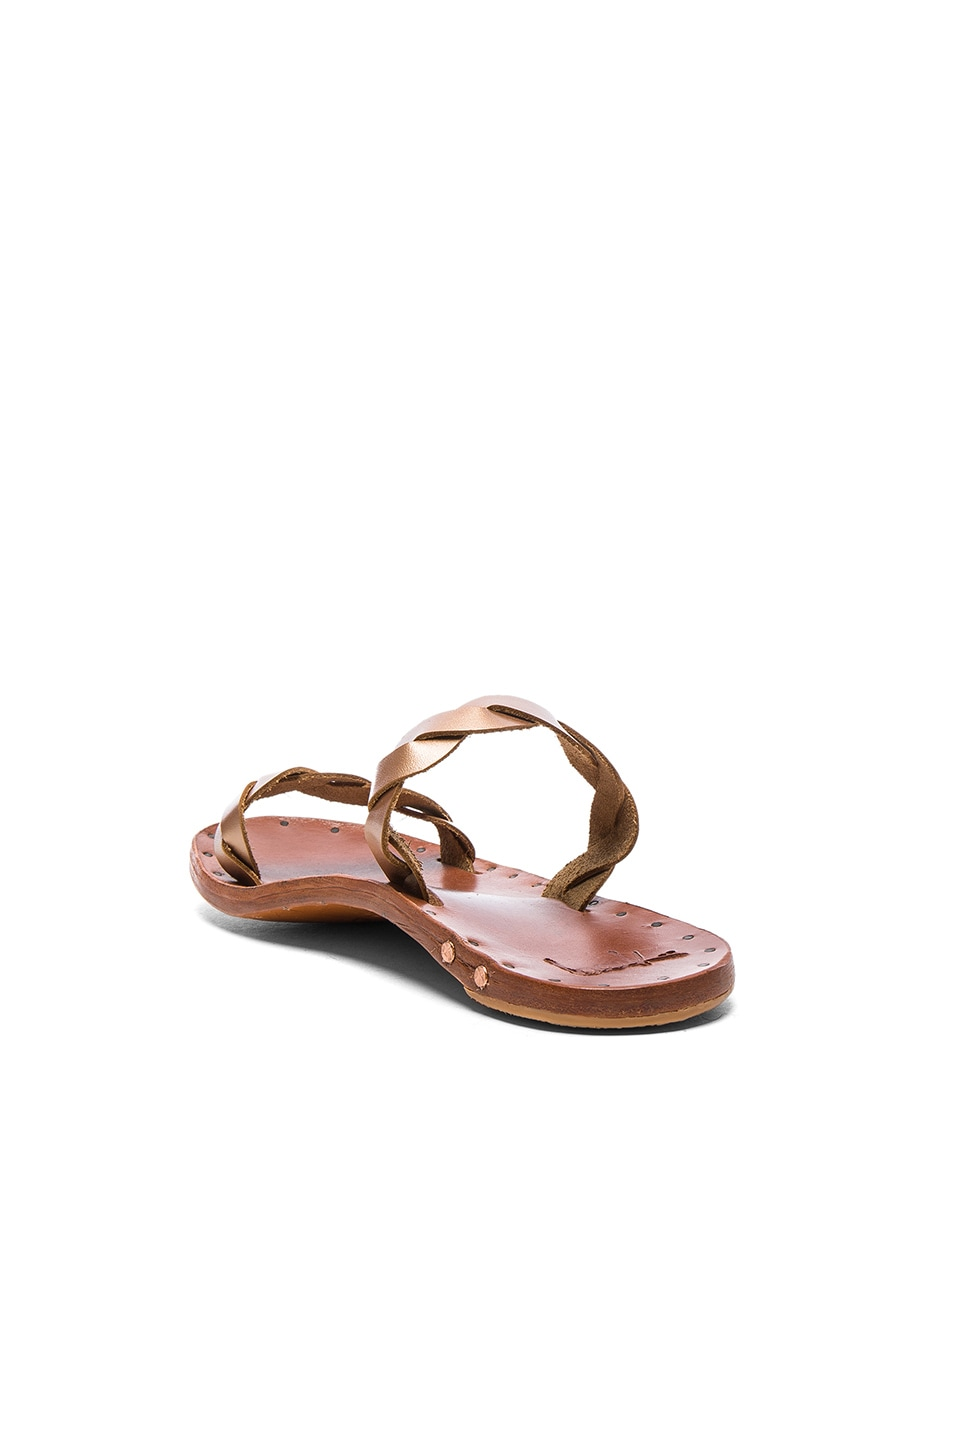 Image 3 of Beek The Pipit Sandals in Rose Gold & Tan